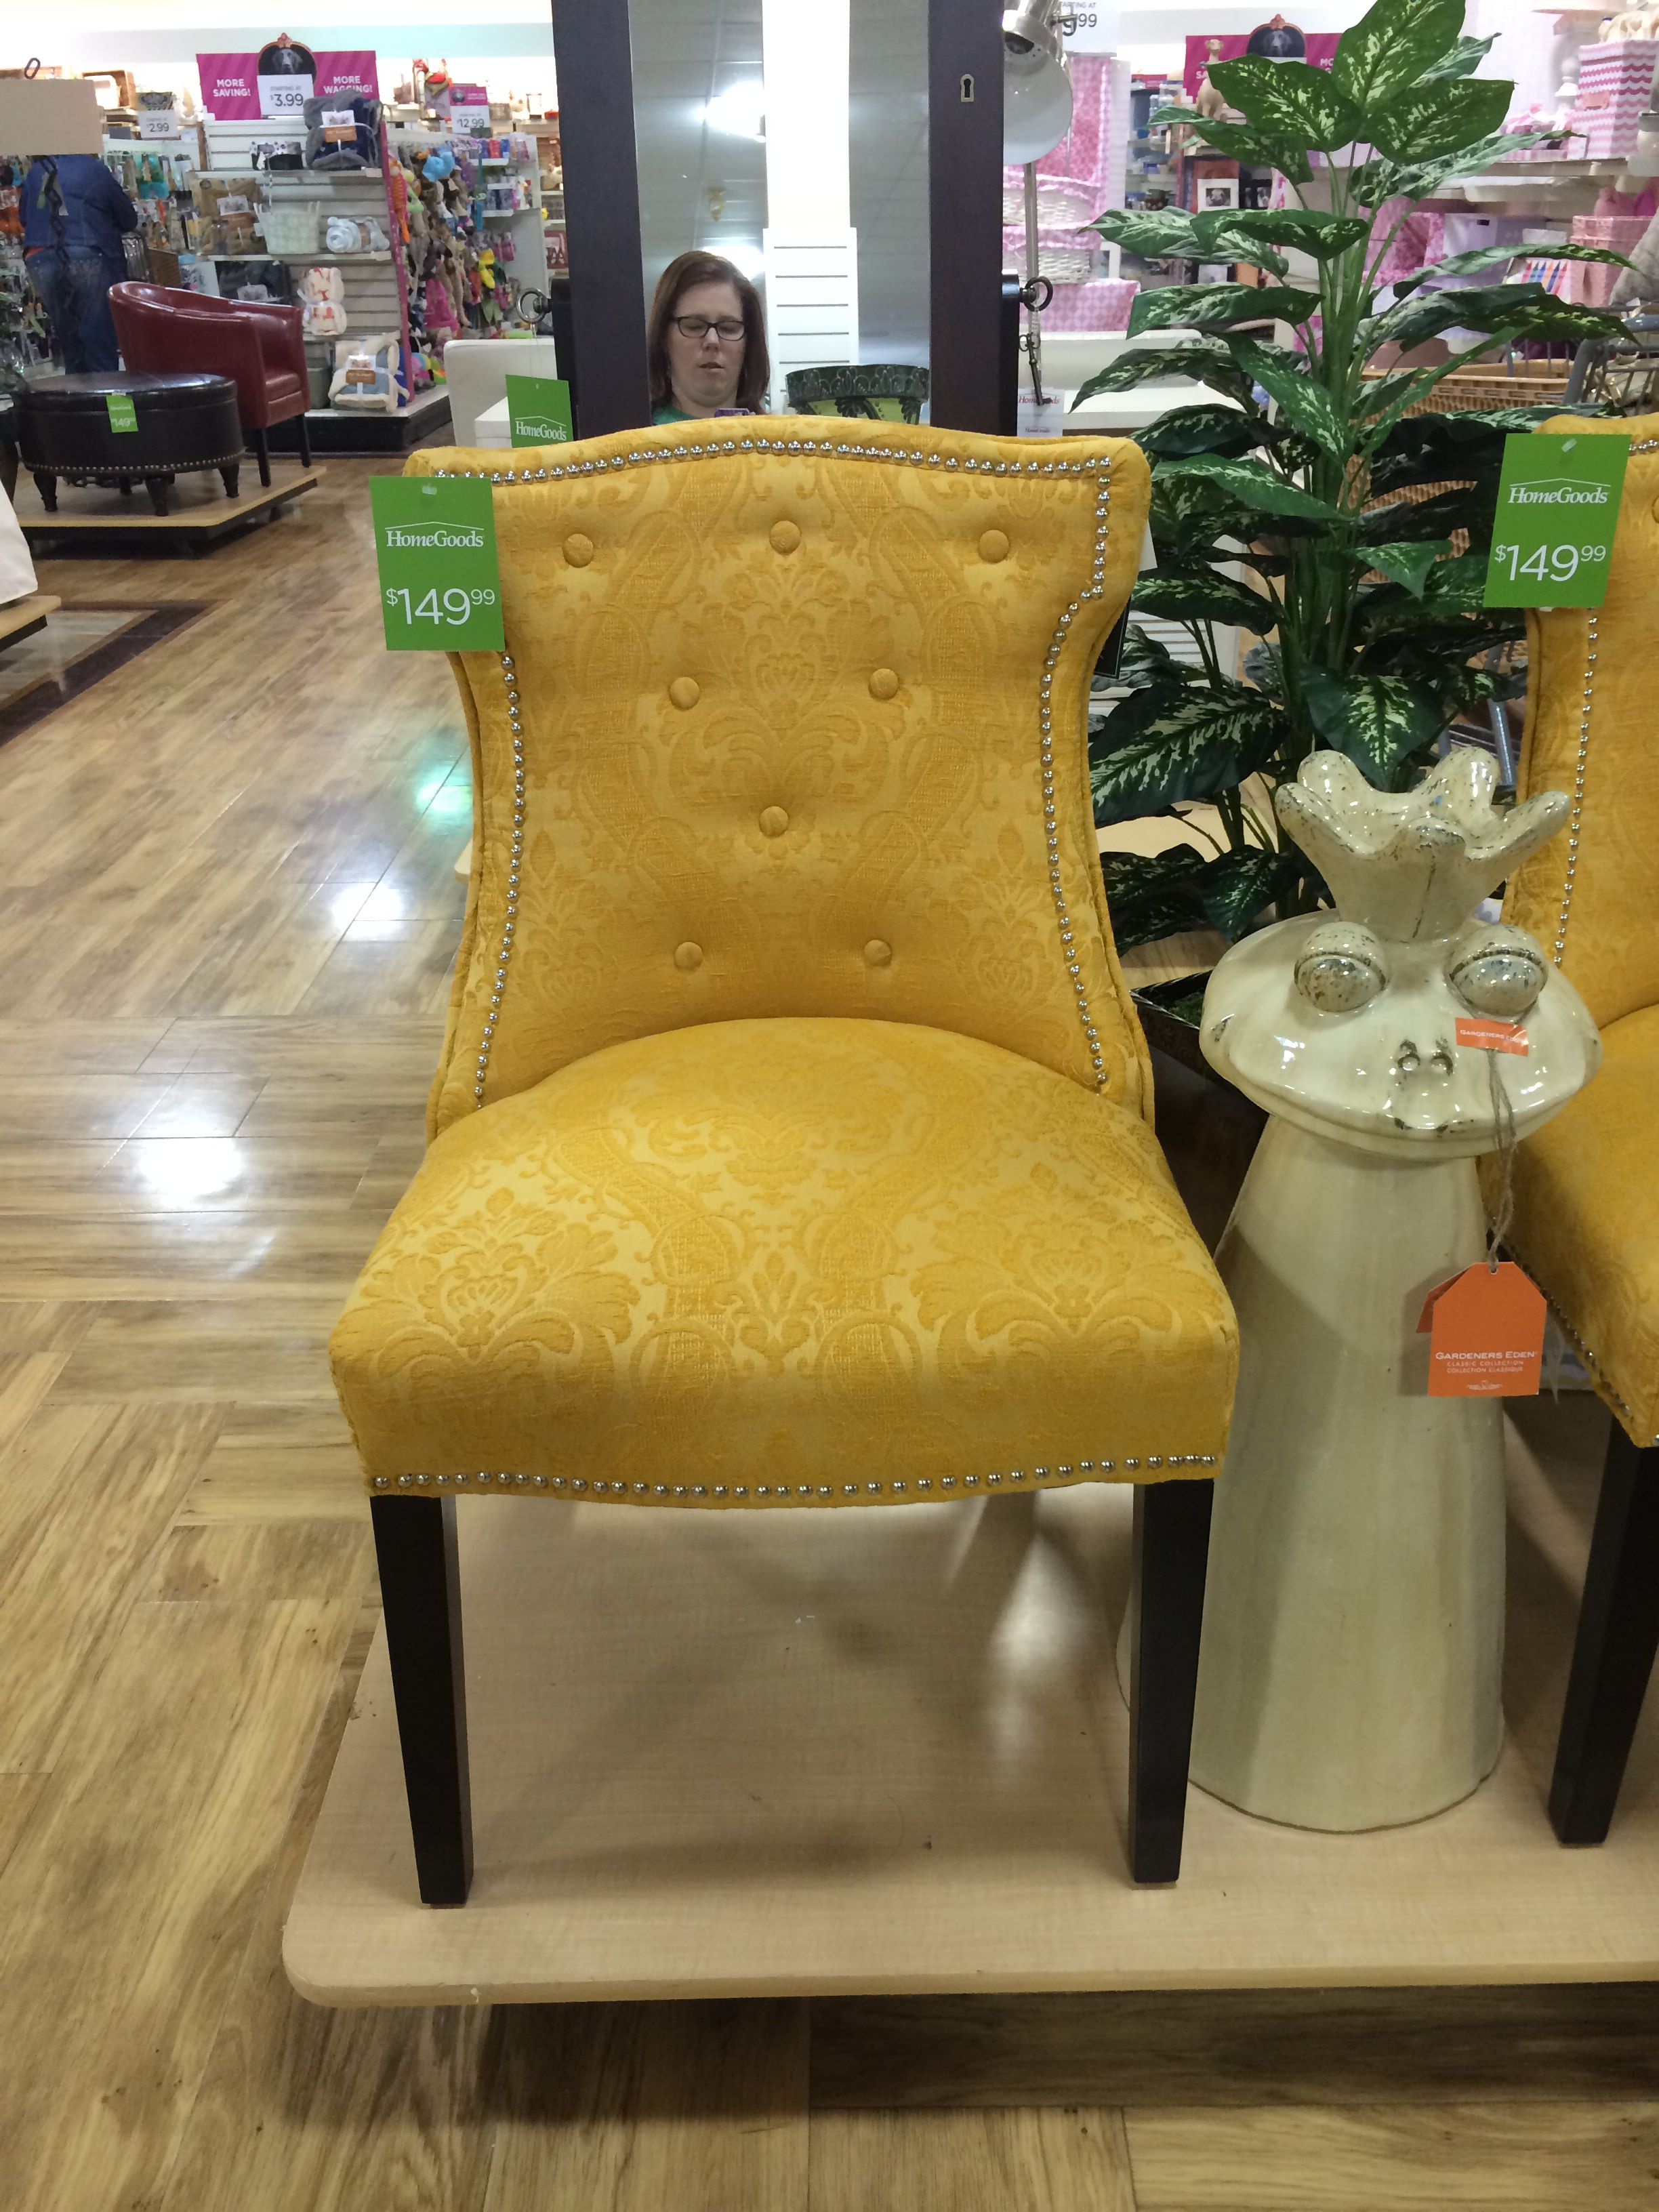 cynthia rowley chairs at marshalls peg perego siesta high chair review home goods bing images